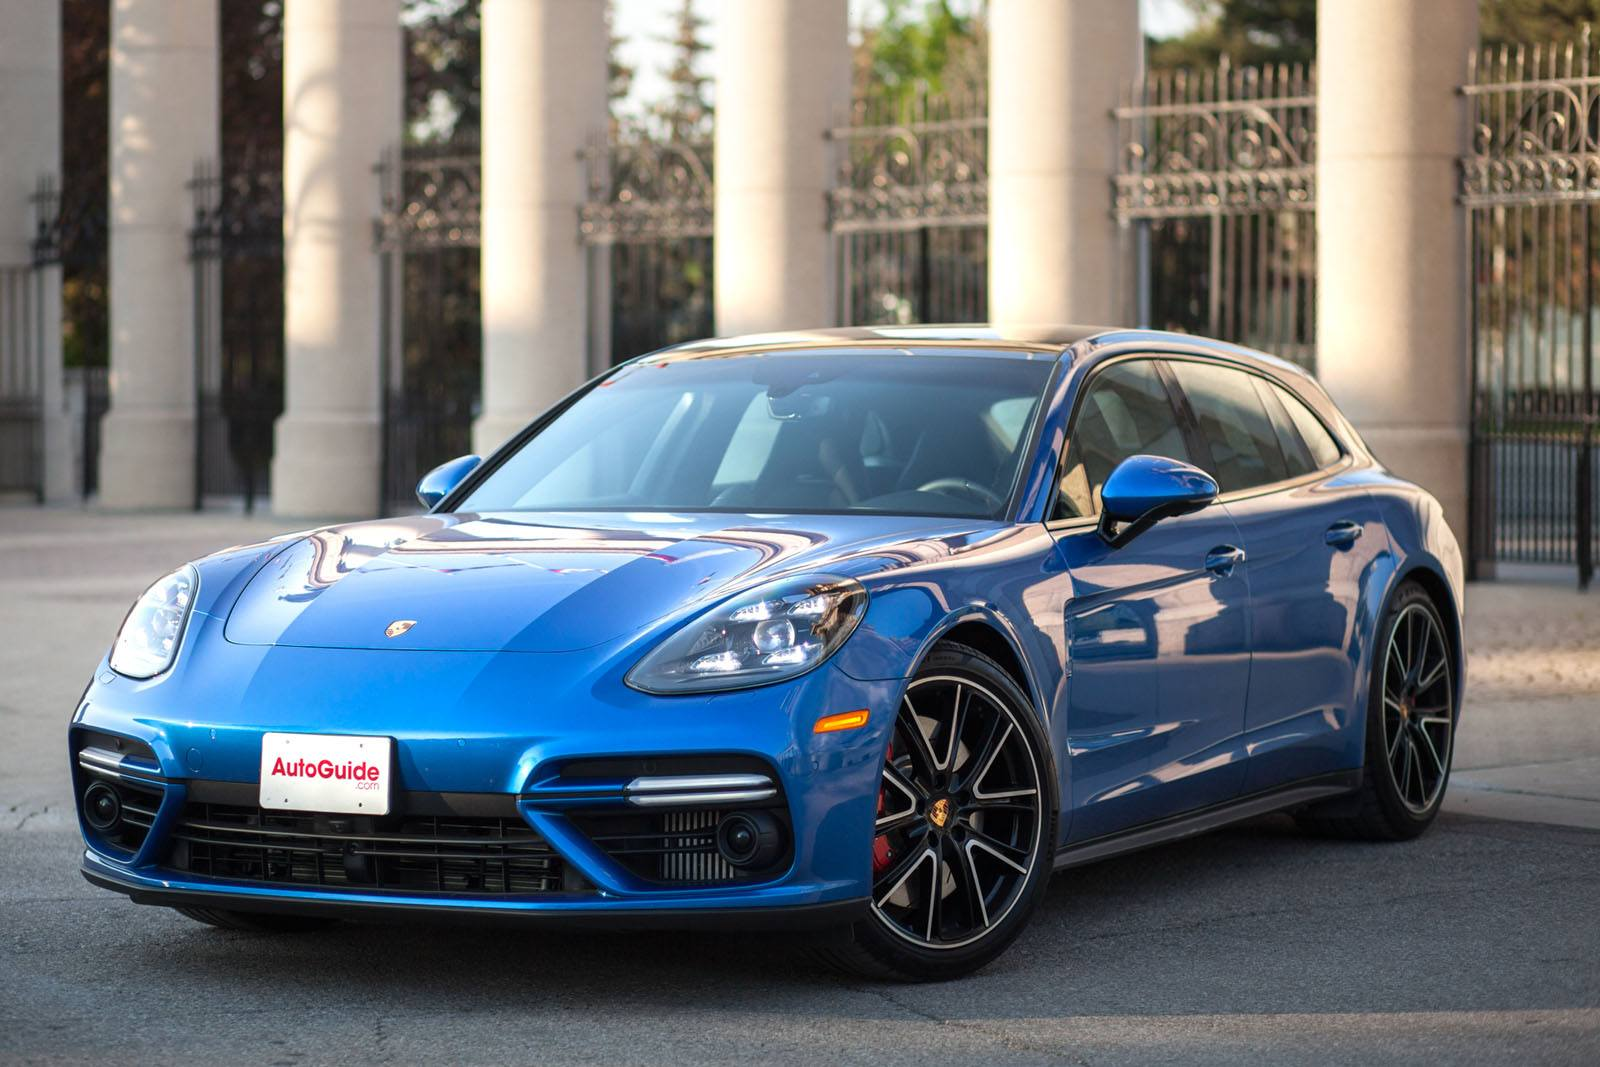 2018 Porsche Panamera Turbo Sport Turismo Review-53-SMART